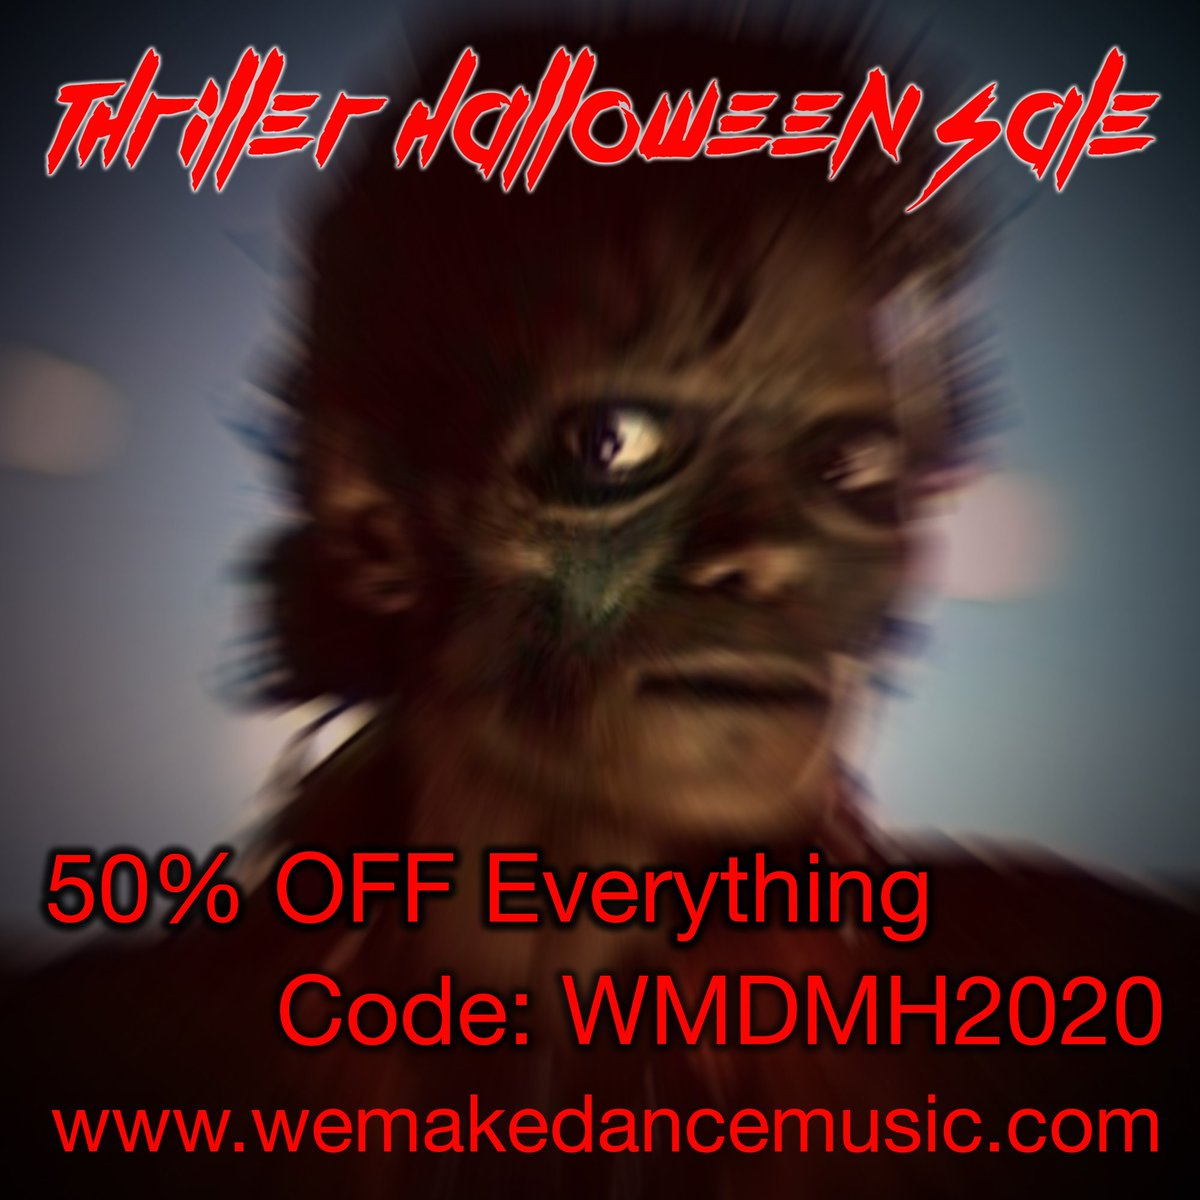 The thriller sale is here, get 50% OFF with code WMDMH2020 https://t.co/vTLU0lxHhp #musicproduction #ableton #abletontemplates #logicprox #logictemplates #flstudio #cubase https://t.co/EkmBfFC0pr